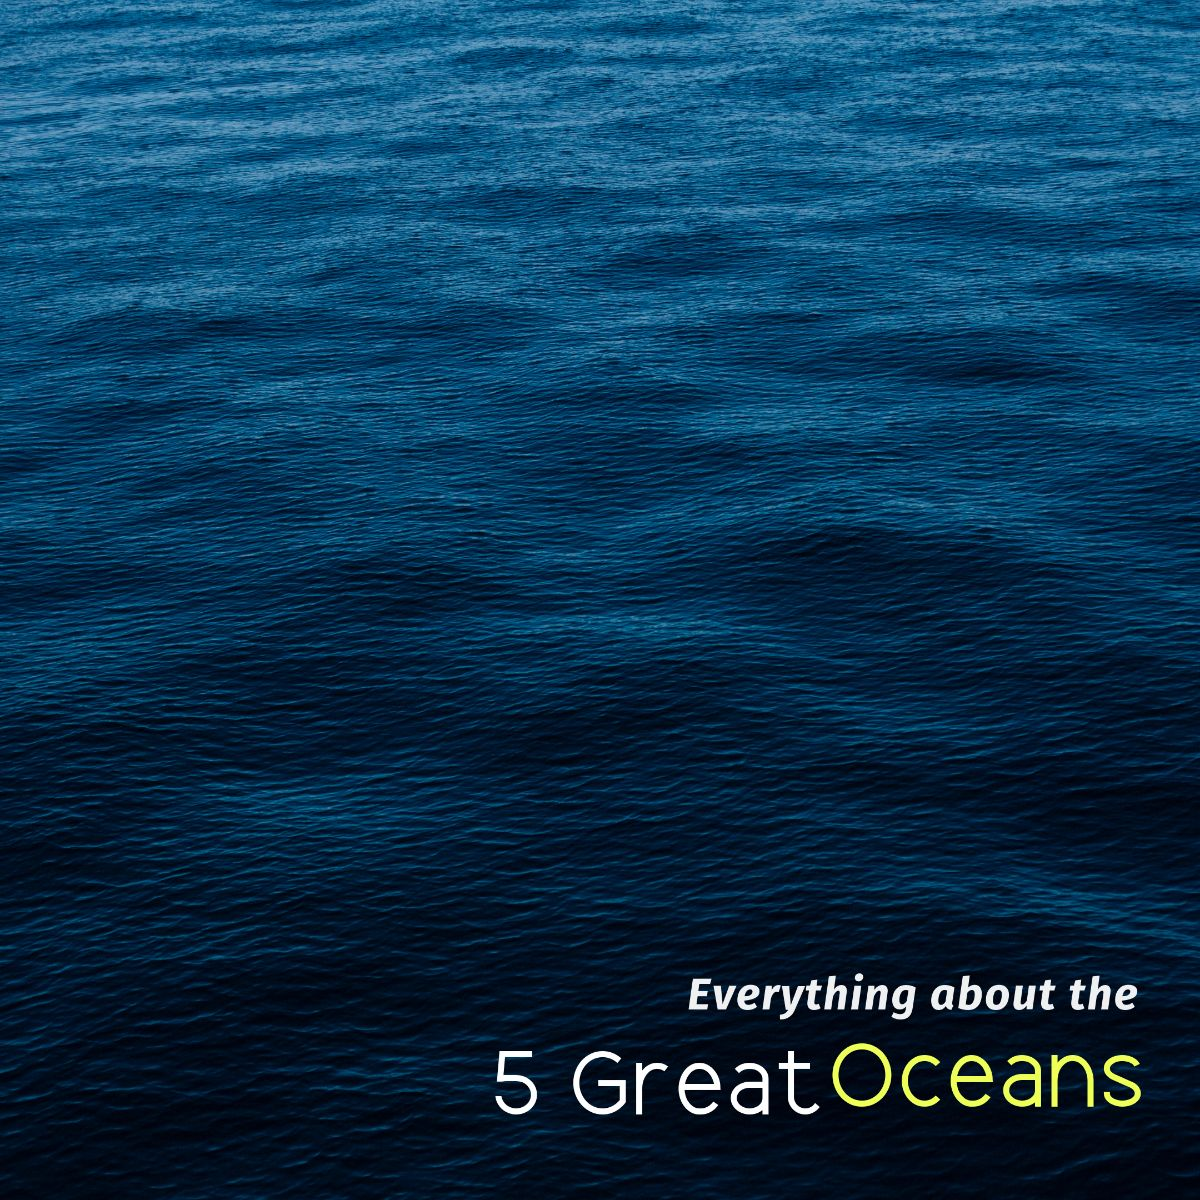 Everything about the 5 Great Oceans on the Earth